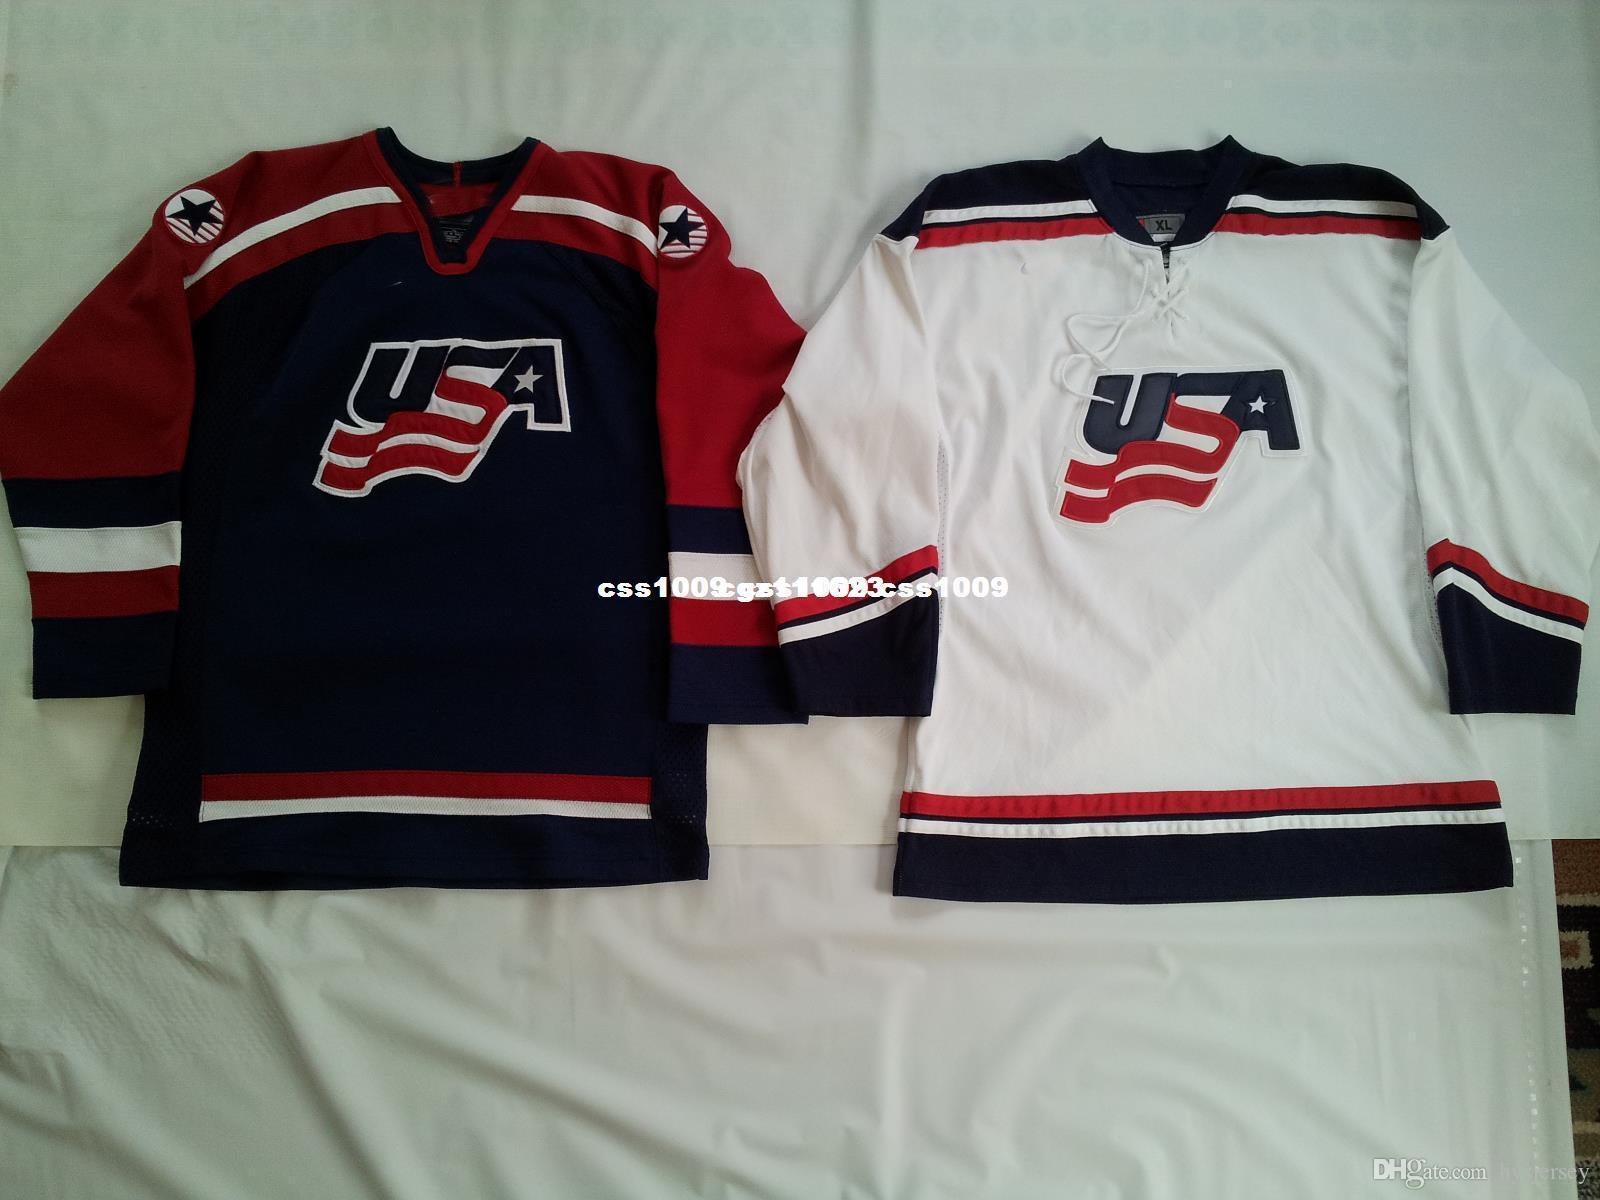 b6bfc0abb 2019 Cheap Custom TWO VINTAGE USA NATIONAL TEAM HOCKEY JERSEY S Stitched  Mens Retro Jerseys From Hysjersey